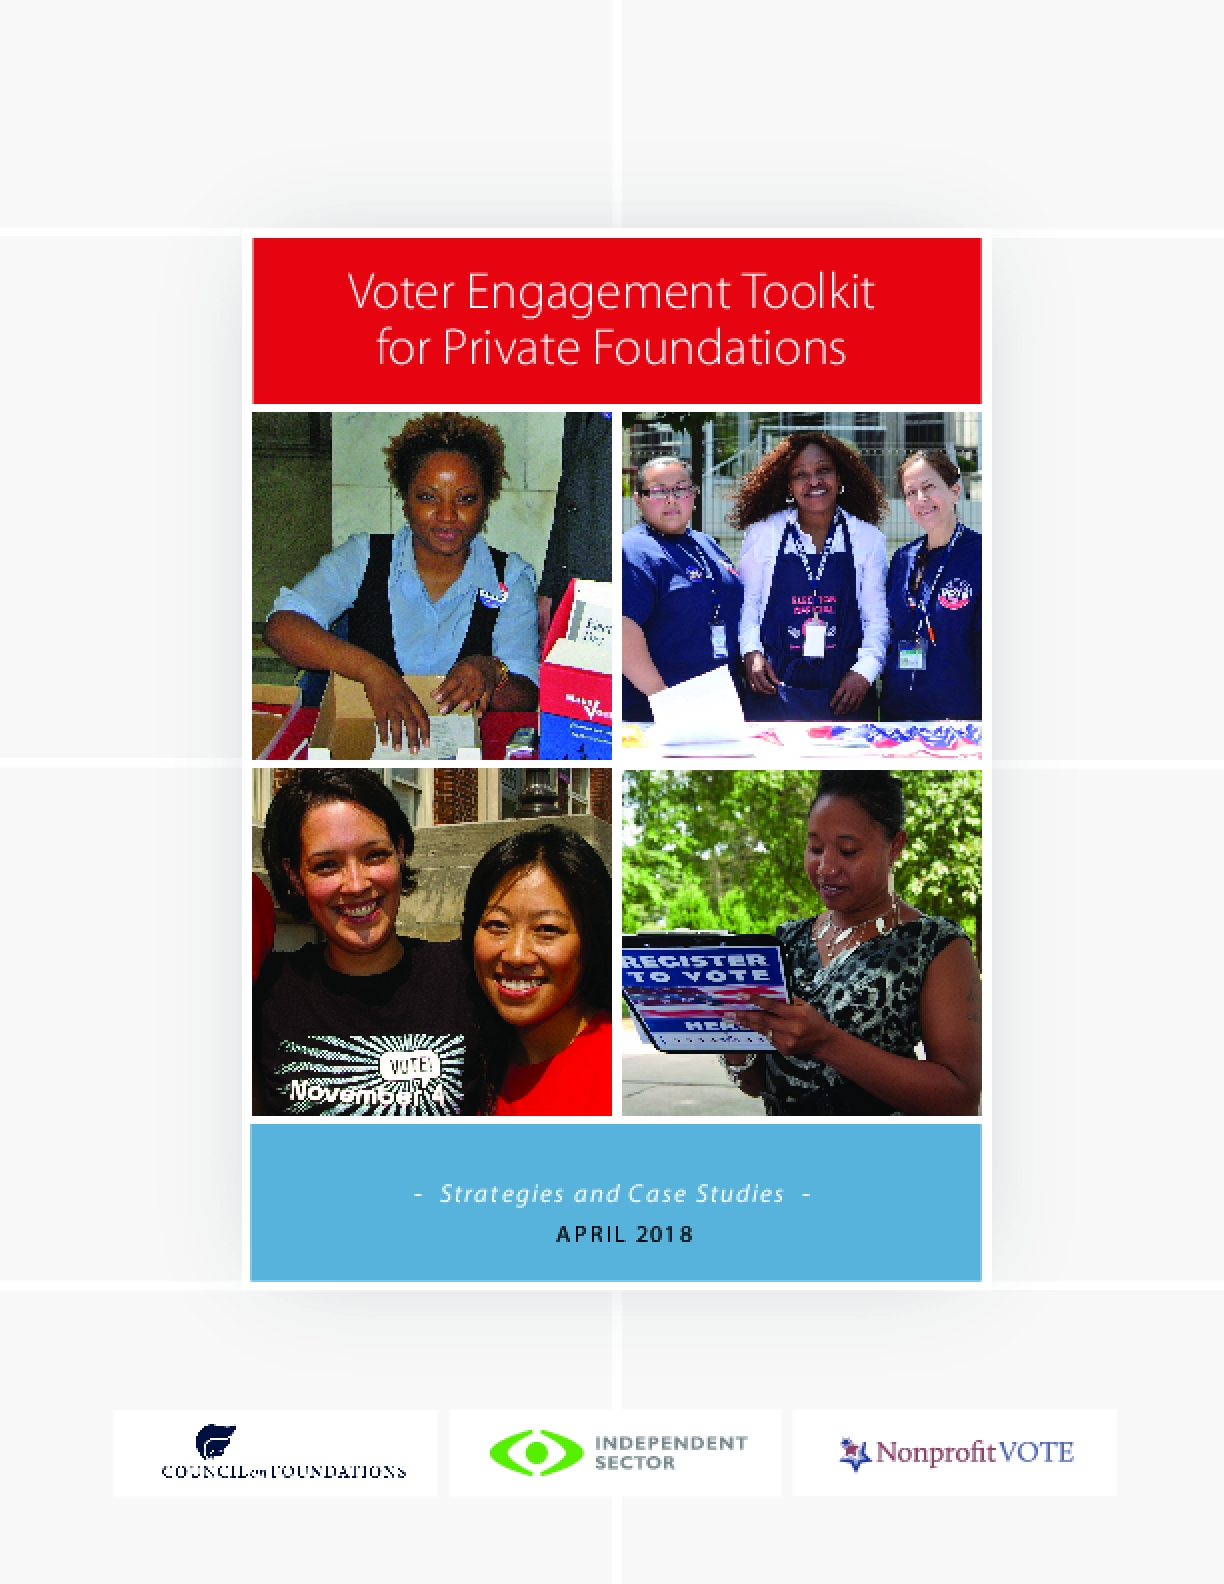 Voter Engagement Toolkit for Private Foundations